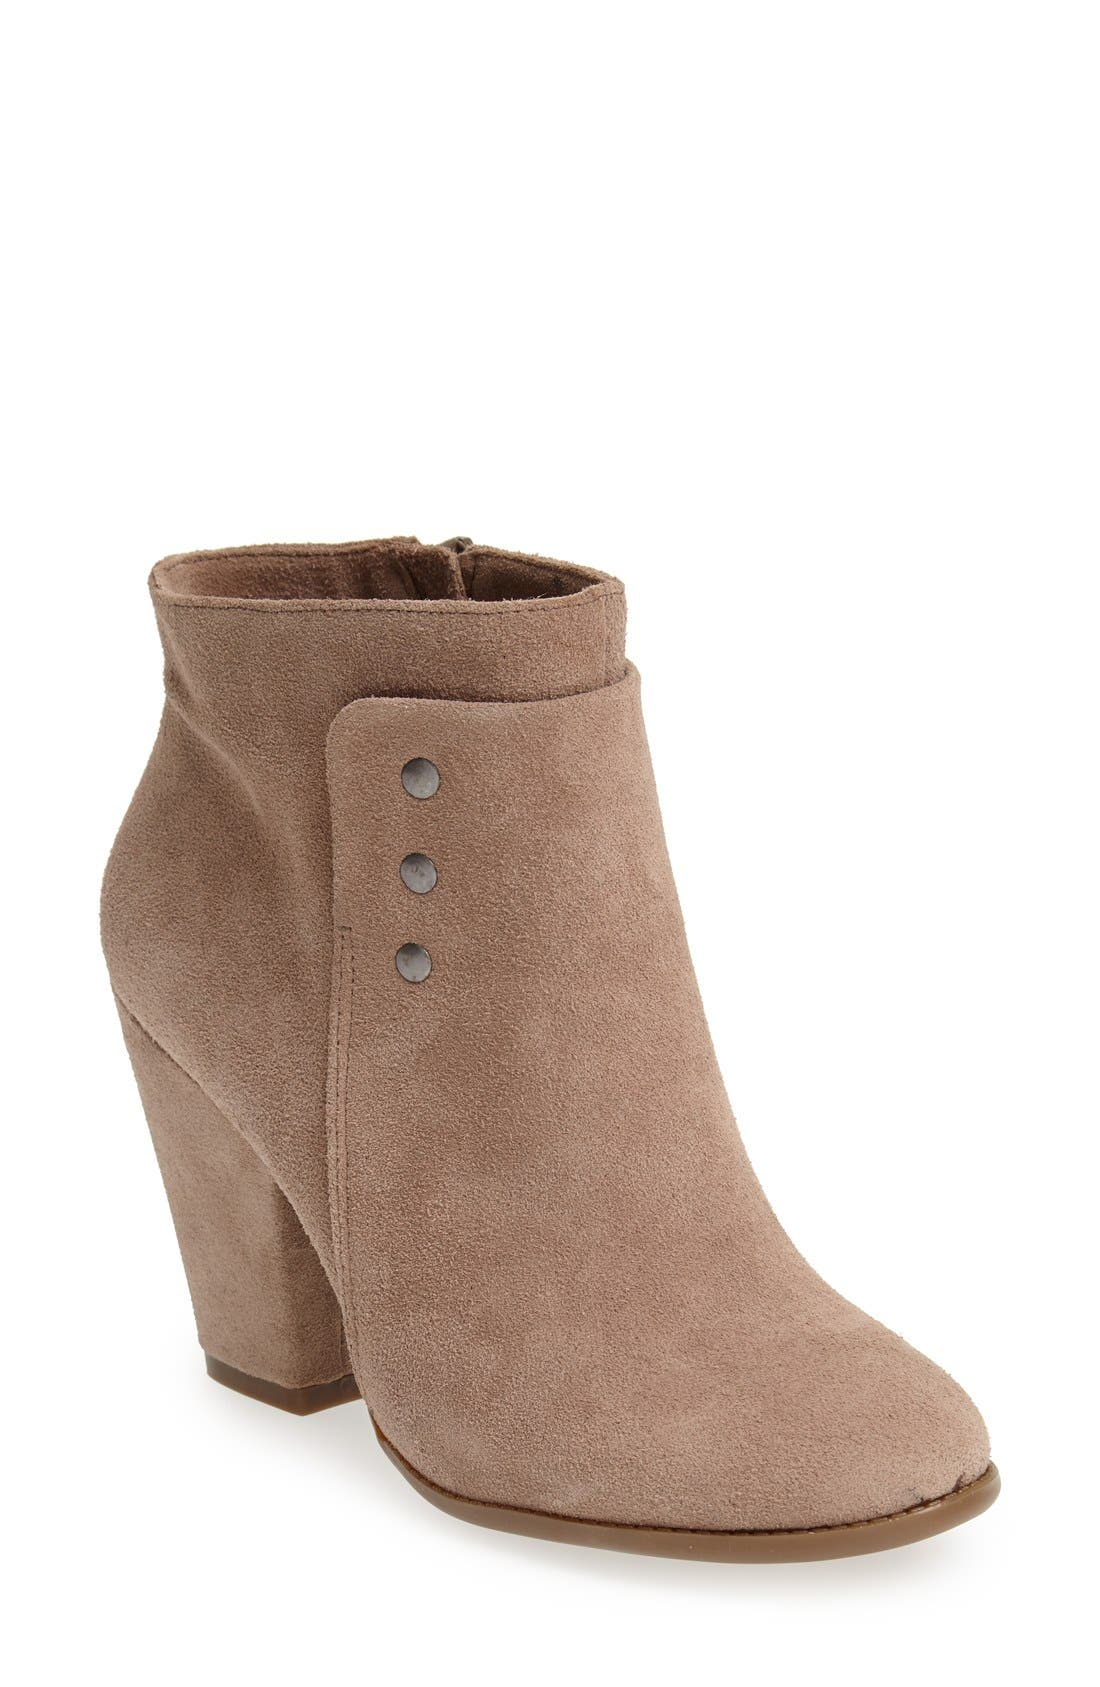 Alternate Image 1 Selected - Sole Society 'Erlina' Leather Ankle Bootie (Women)